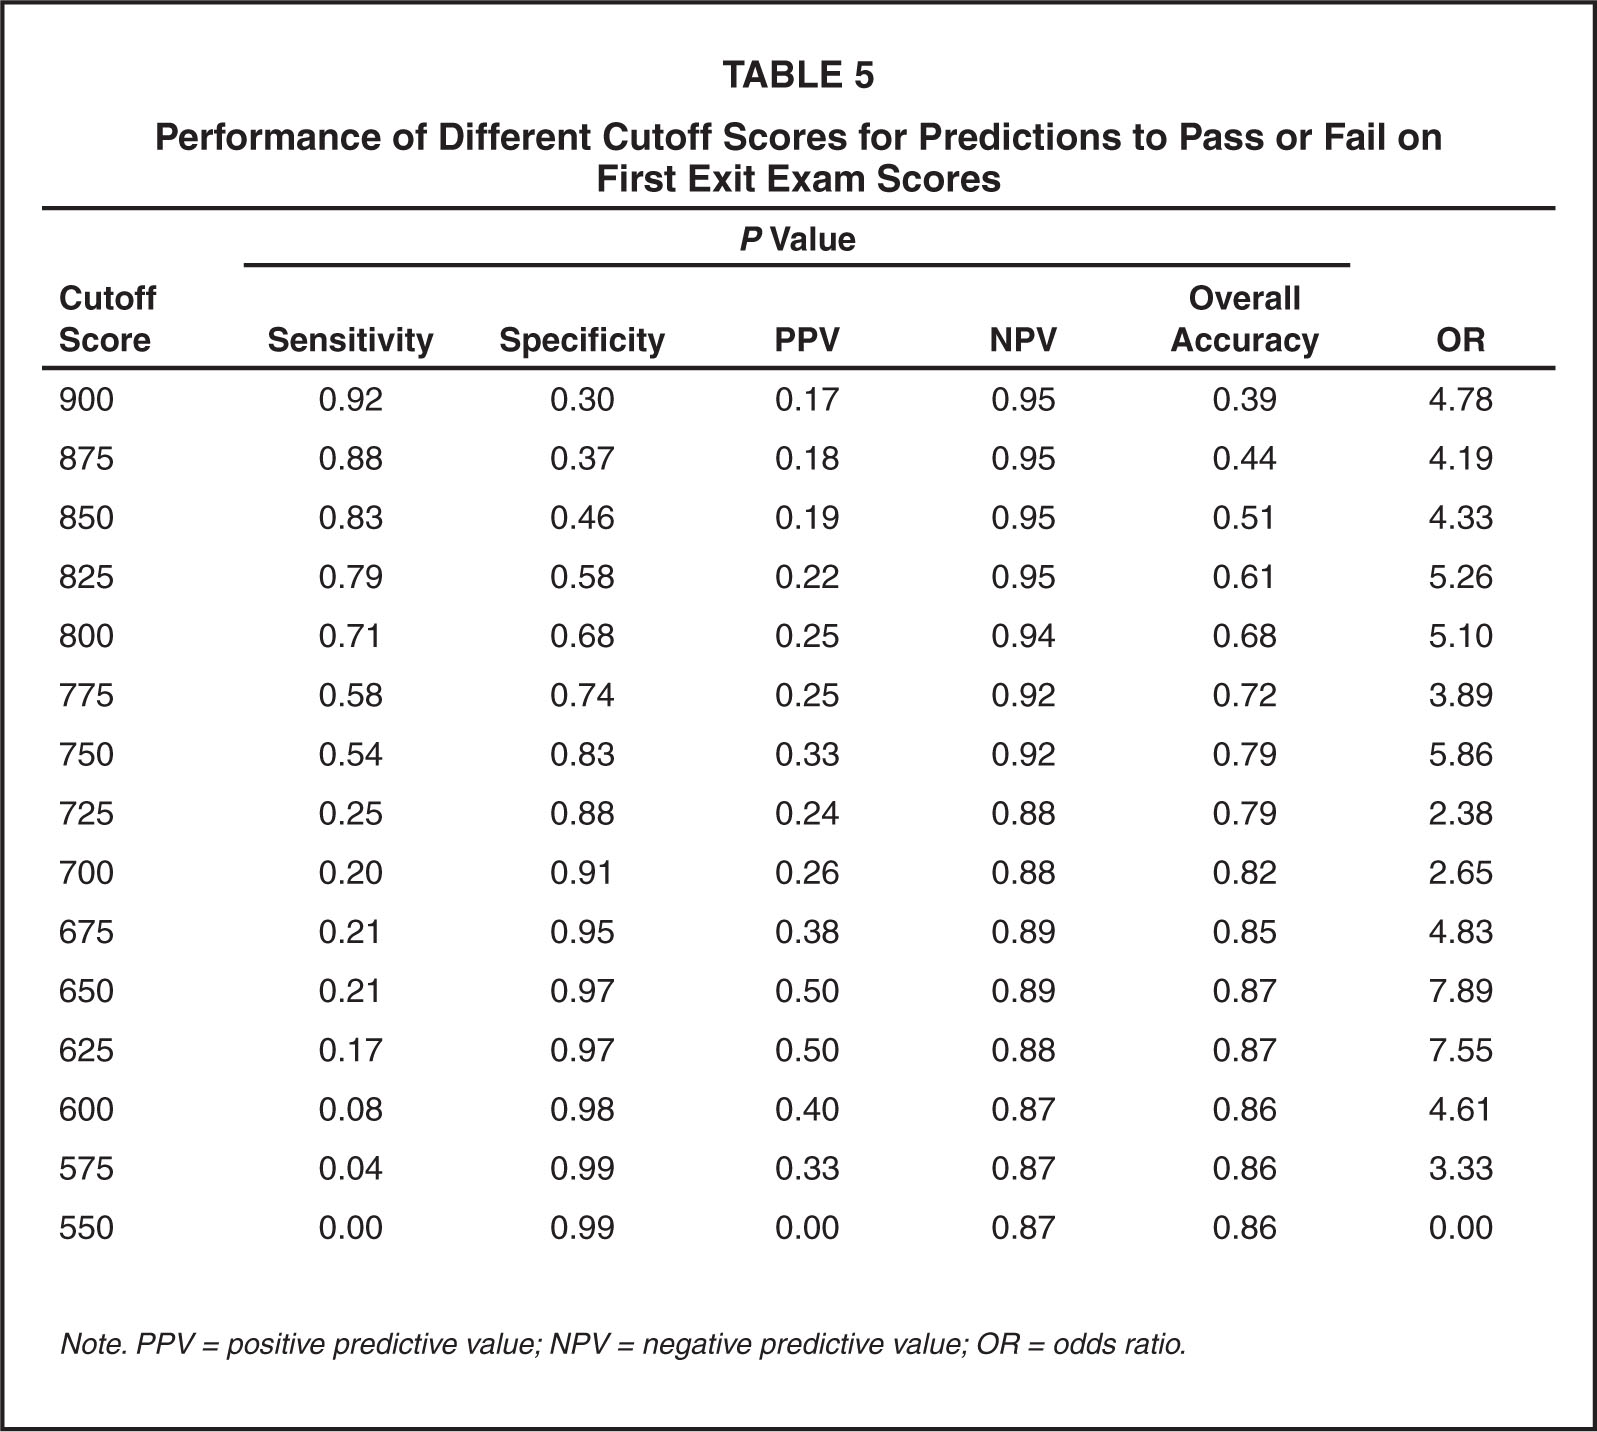 Performance of Different Cutoff Scores for Predictions to Pass or Fail on First Exit Exam Scores